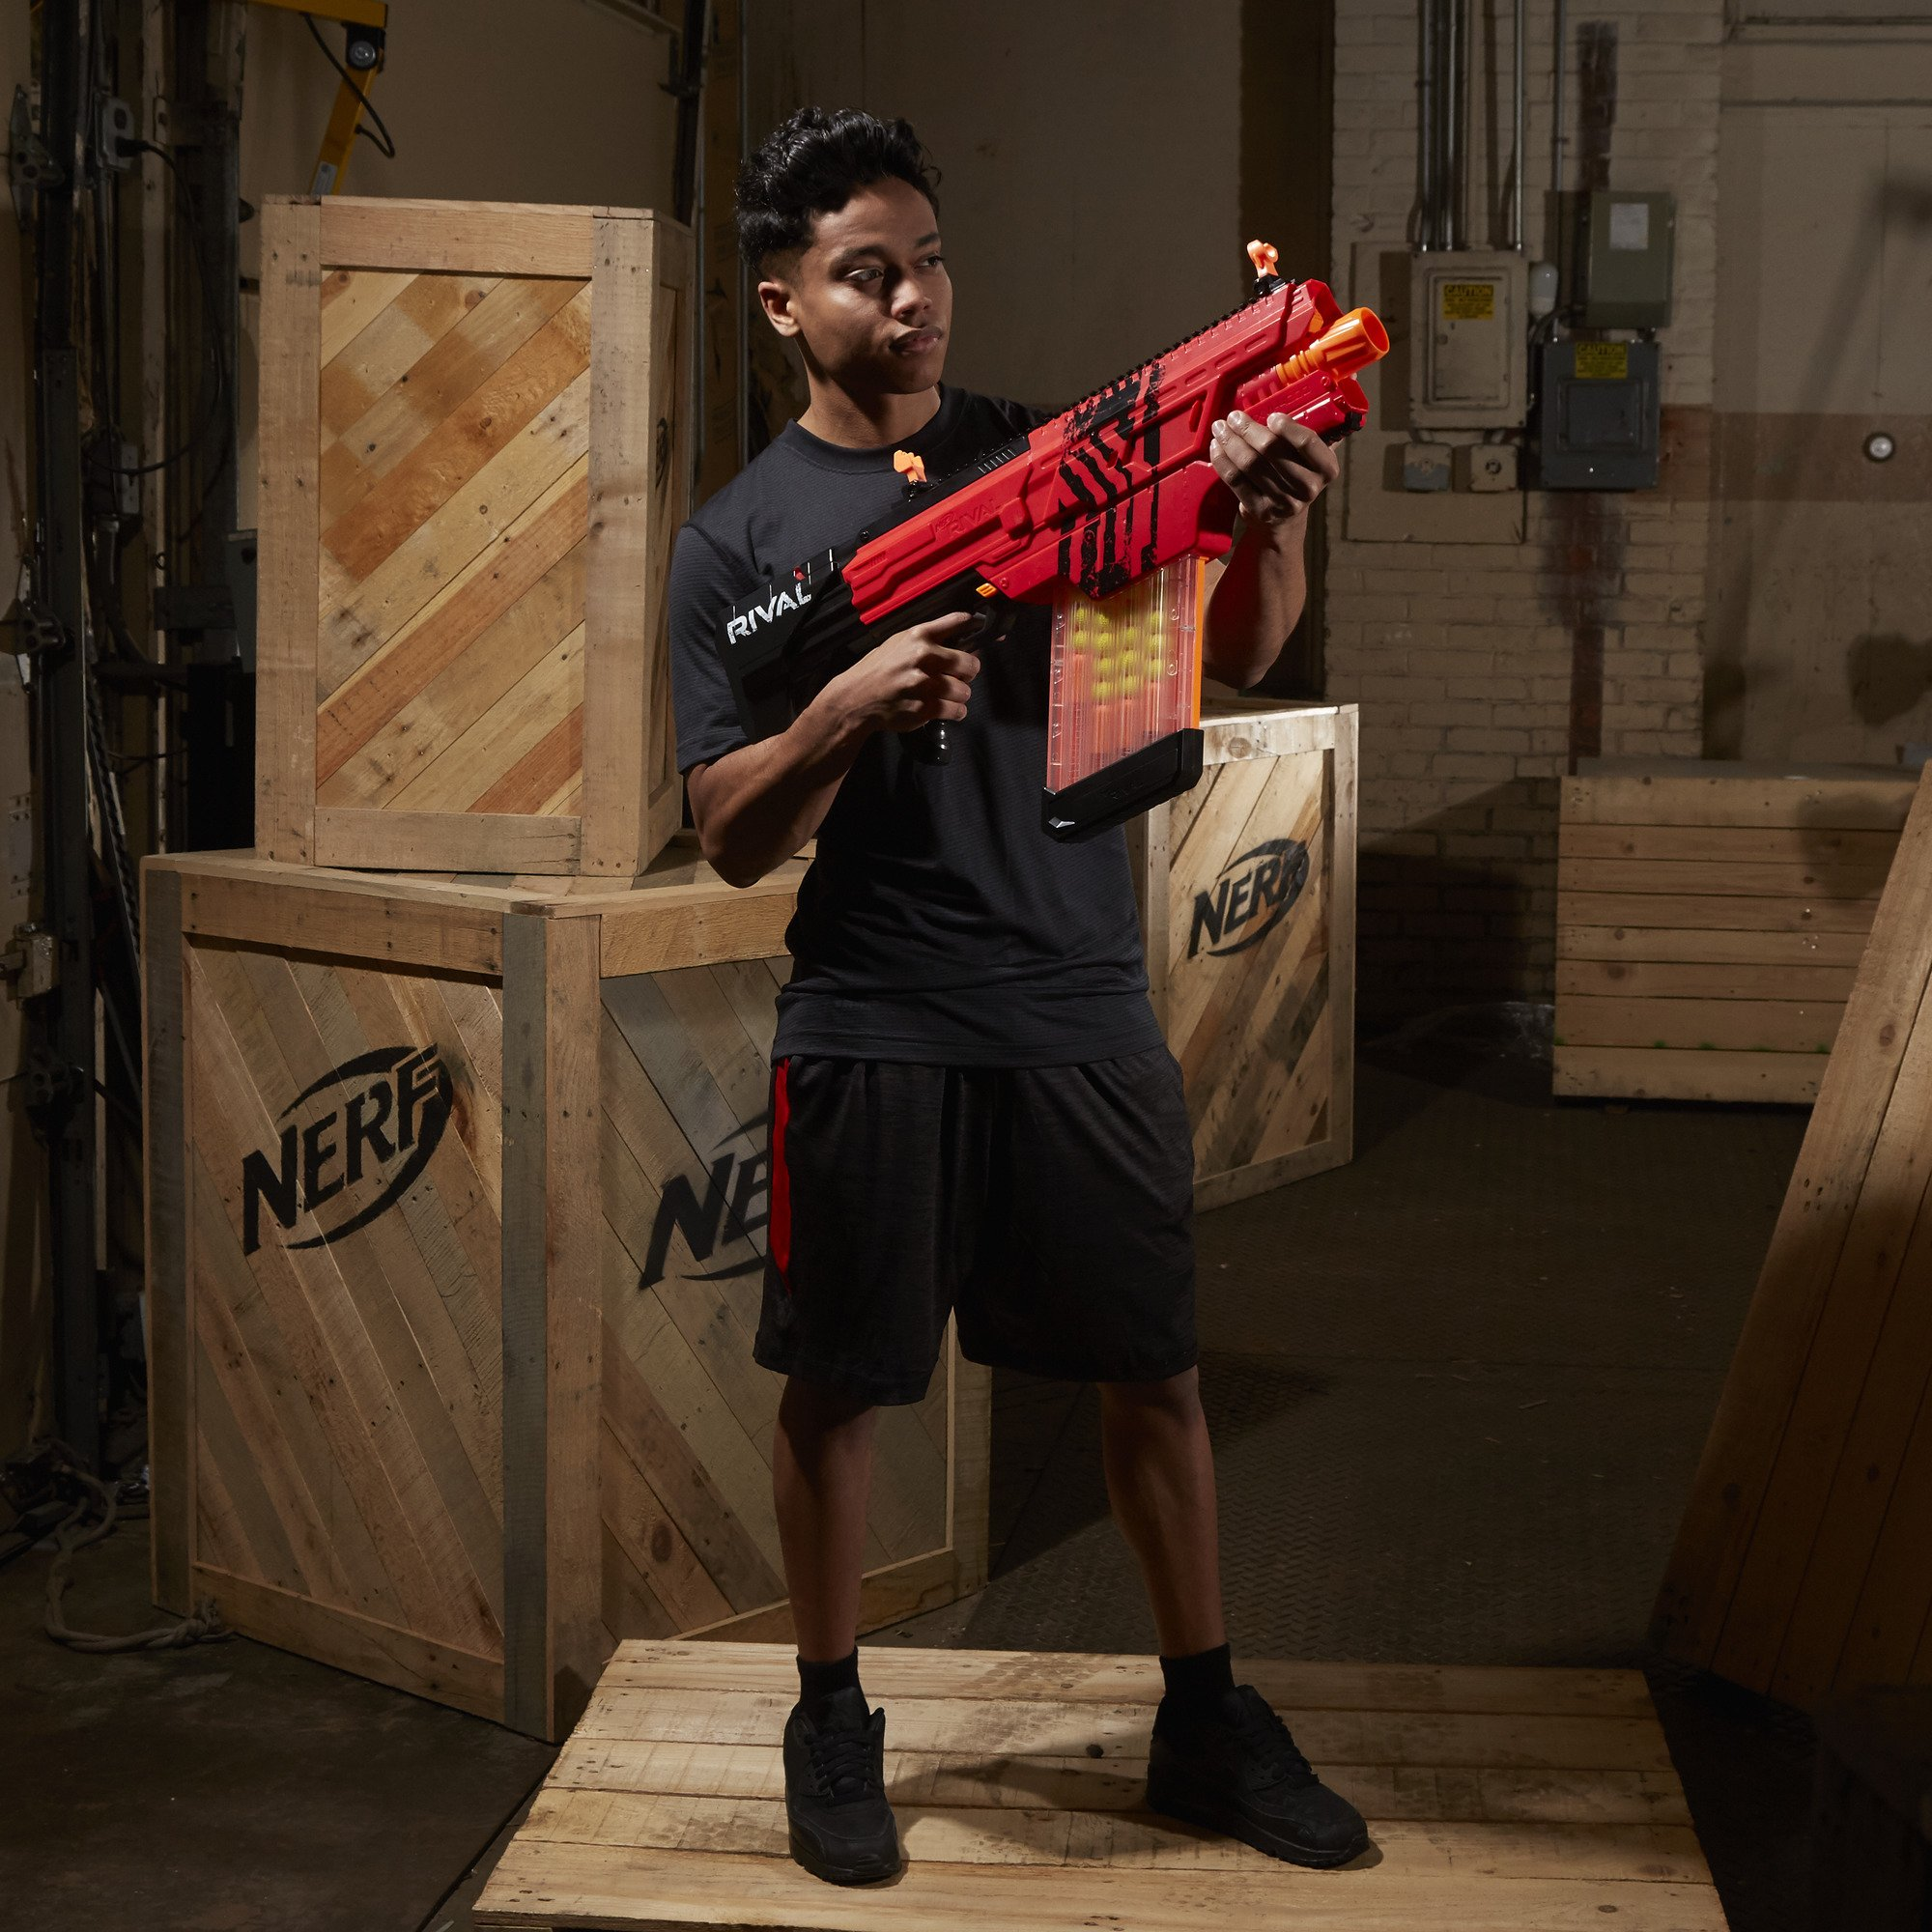 Nerf Rival Khaos MXVI-4000 Blaster (Red) by NERF (Image #12)